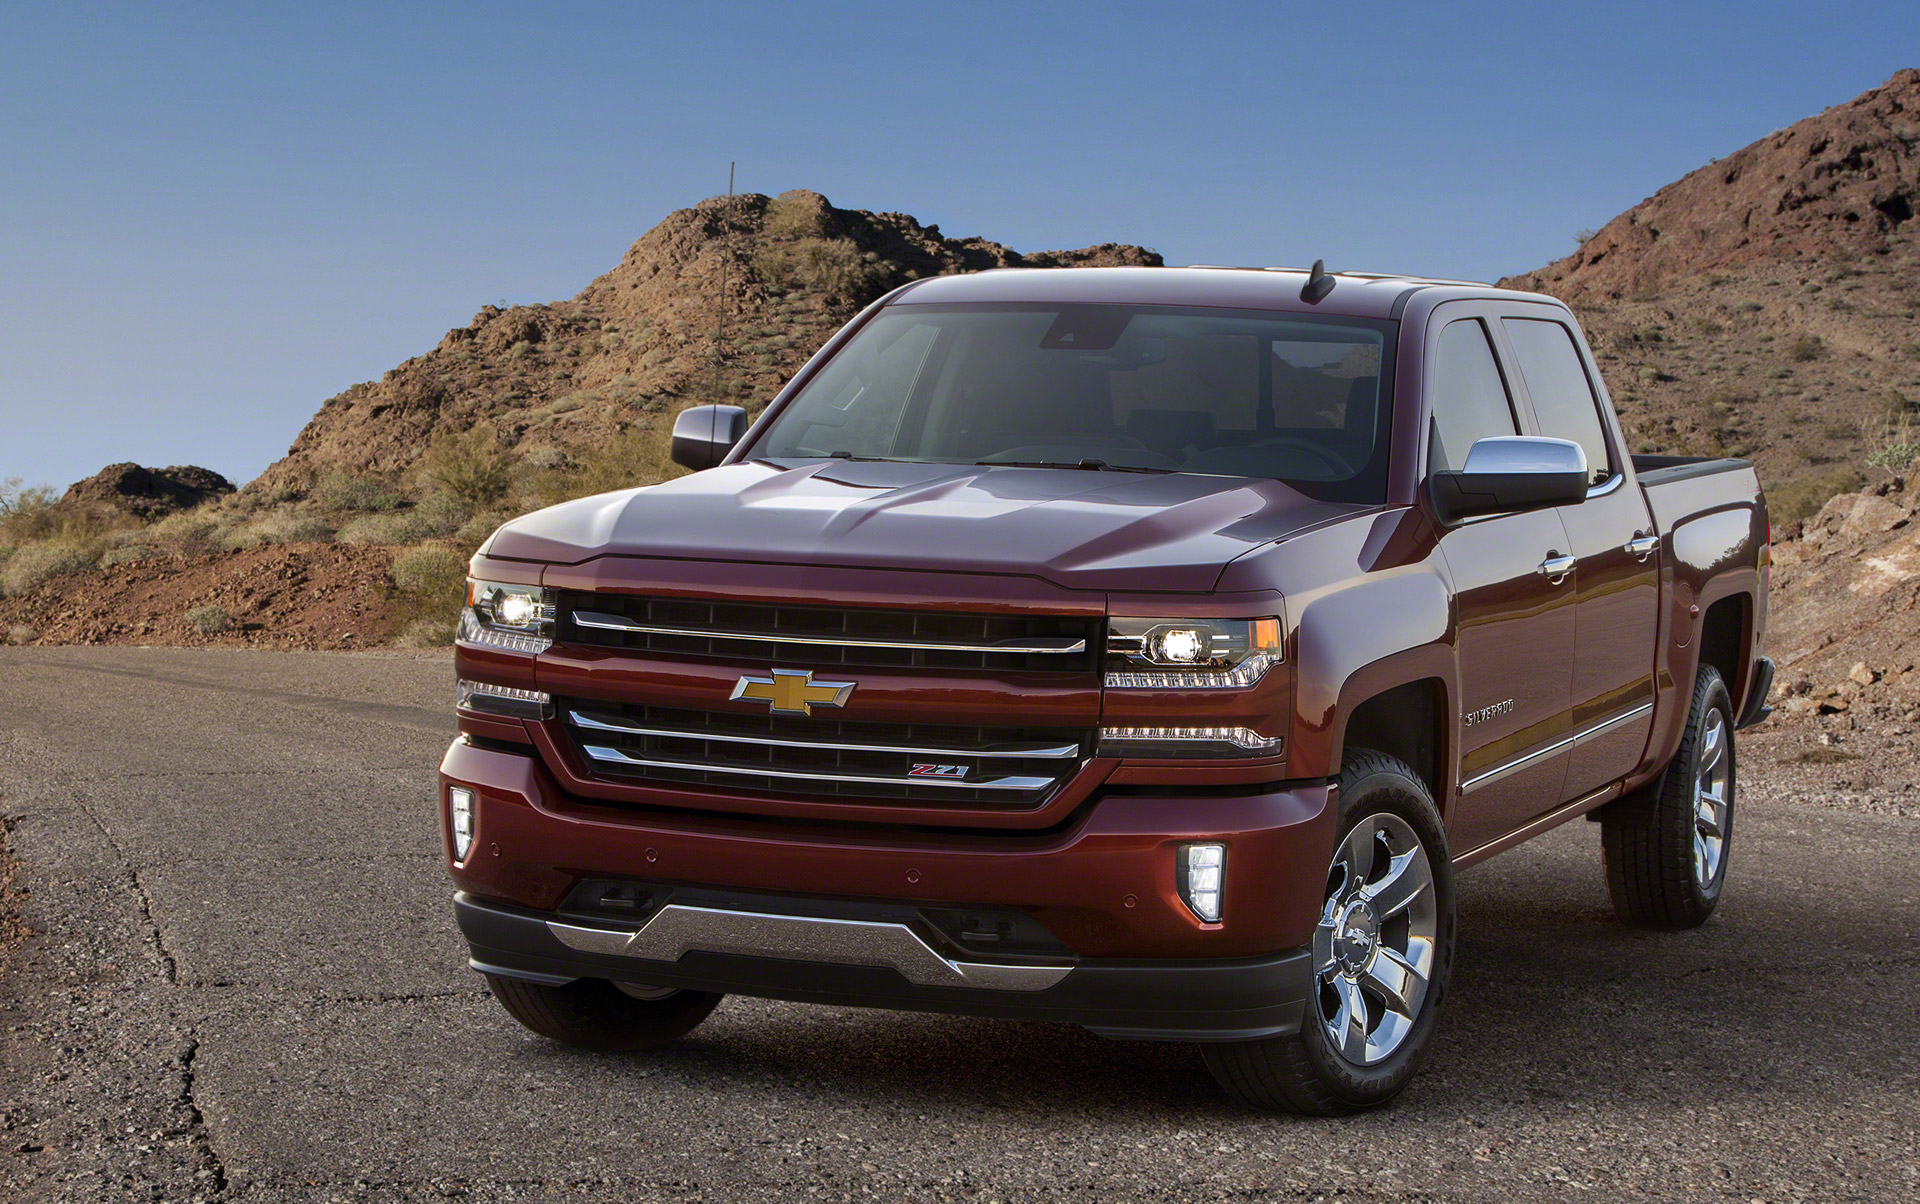 2016 chevrolet silverado 1500 gets sporty new look more tech. Black Bedroom Furniture Sets. Home Design Ideas